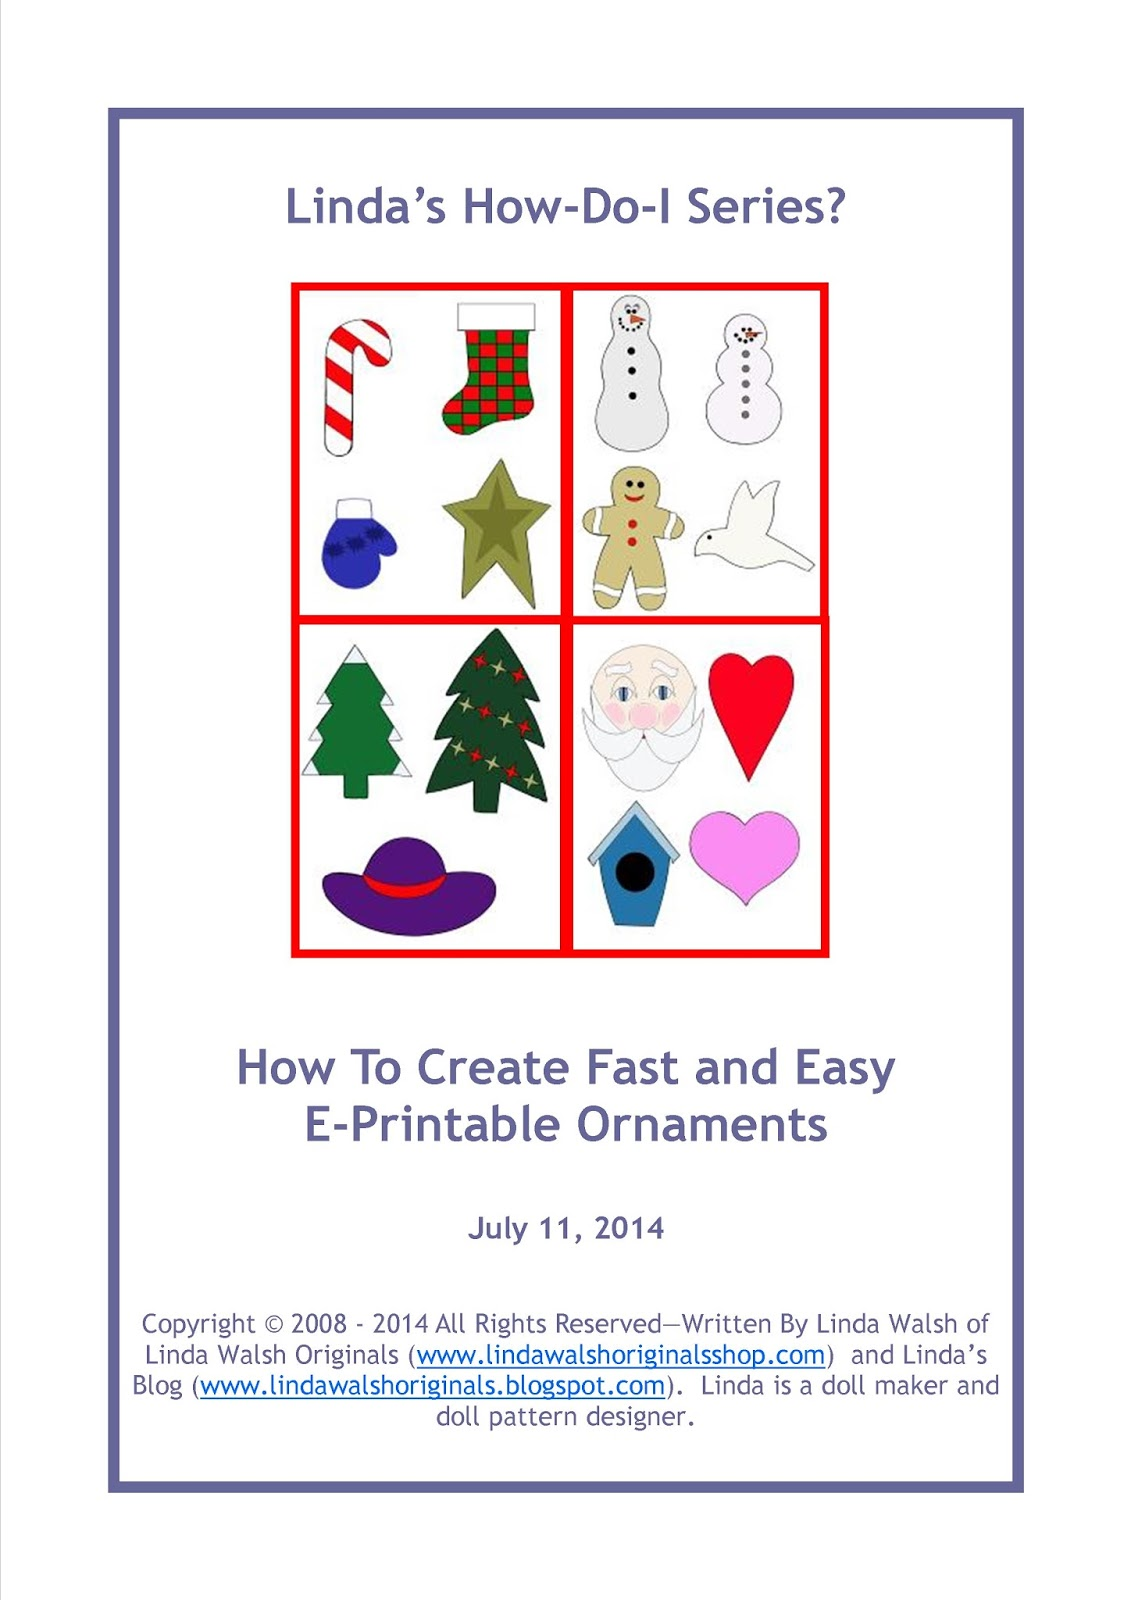 How To Make A Quick Book Cover : Linda walsh originals dolls and crafts s how